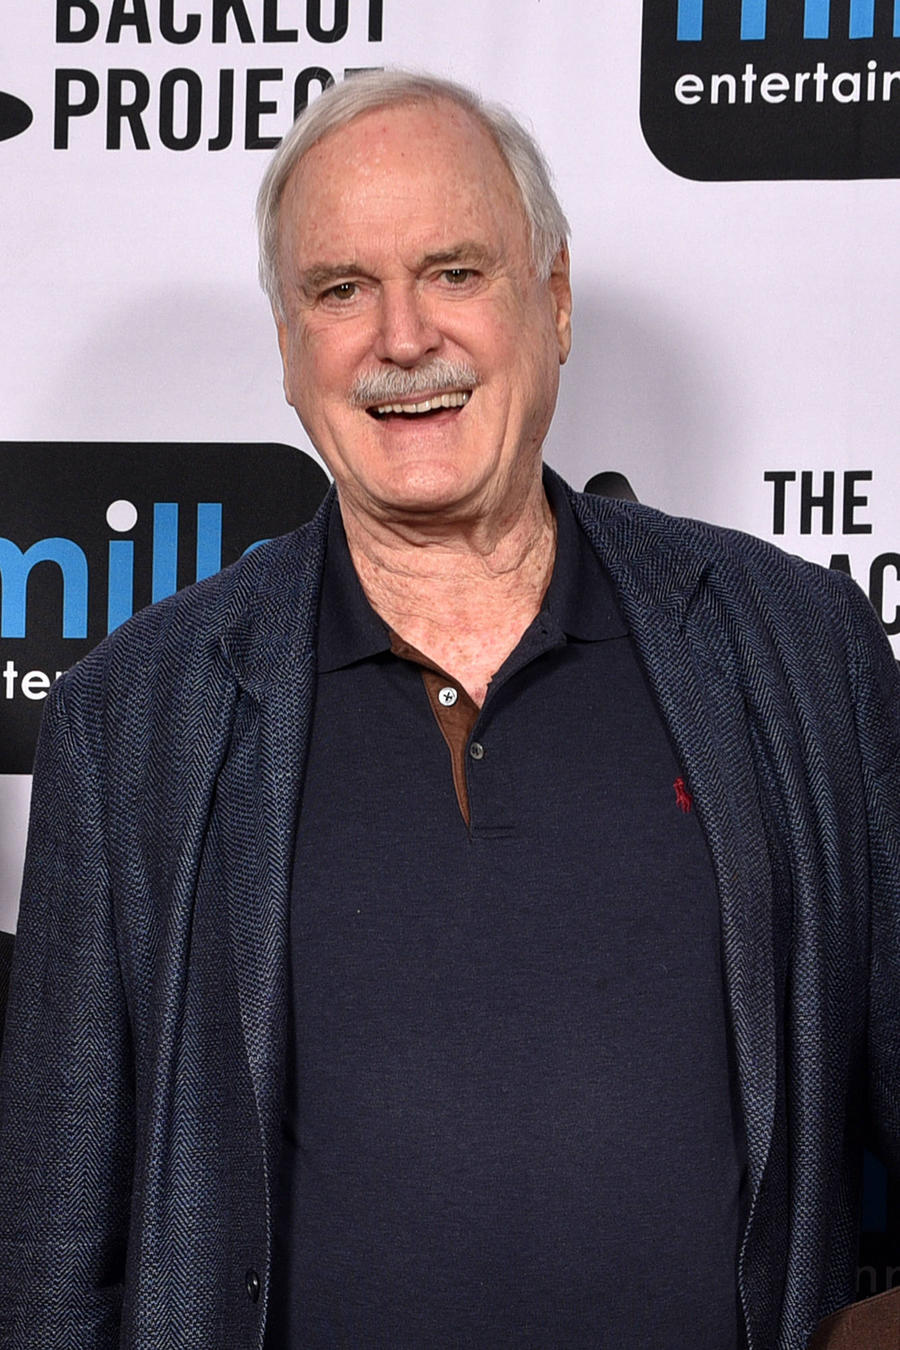 John Cleese Joins Justice League Cast - Report